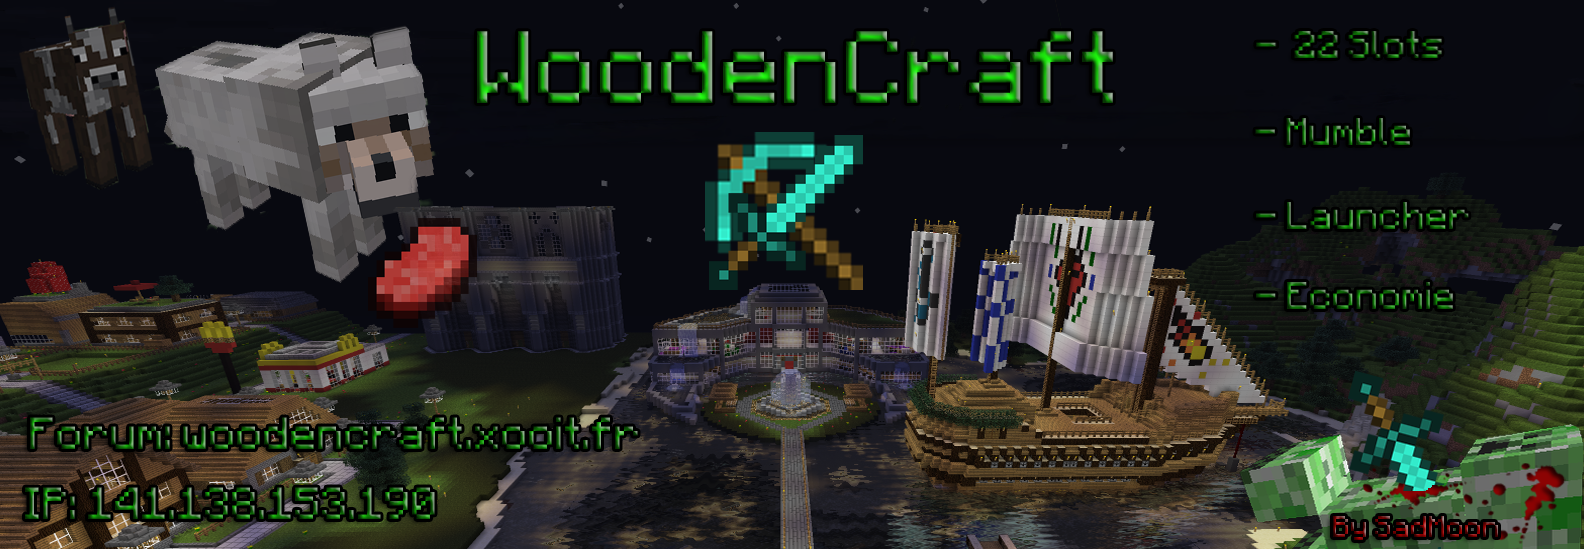 Woodencraft-Minecraft Index du Forum